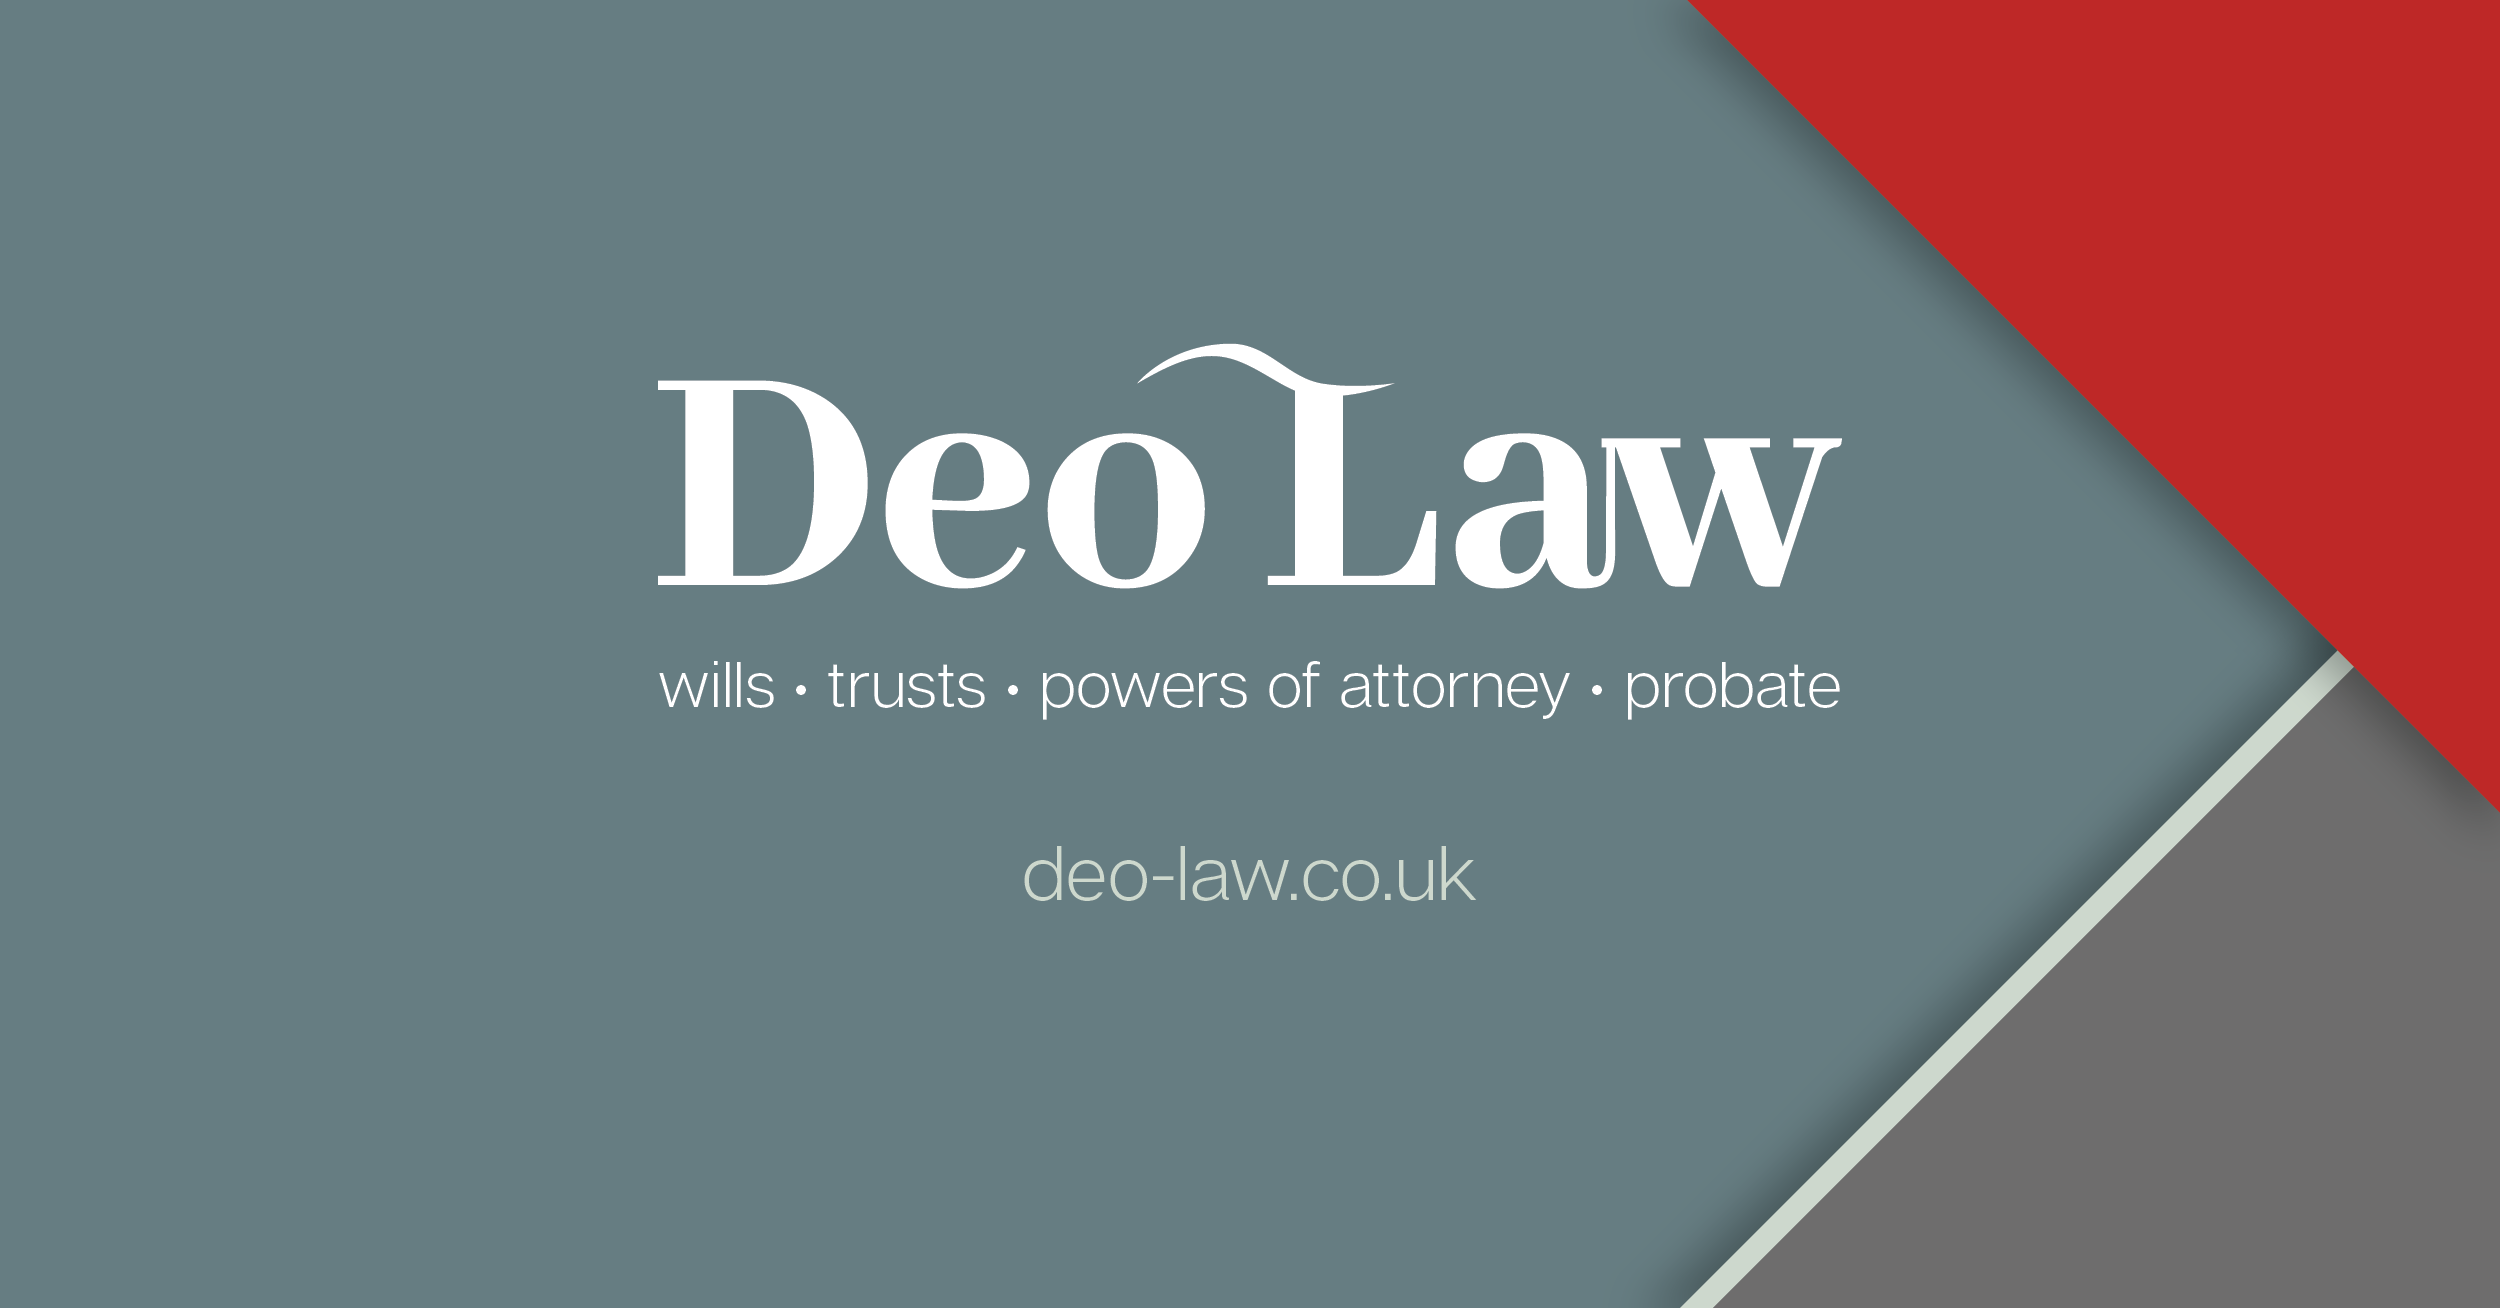 Deo Law Facebook Cover